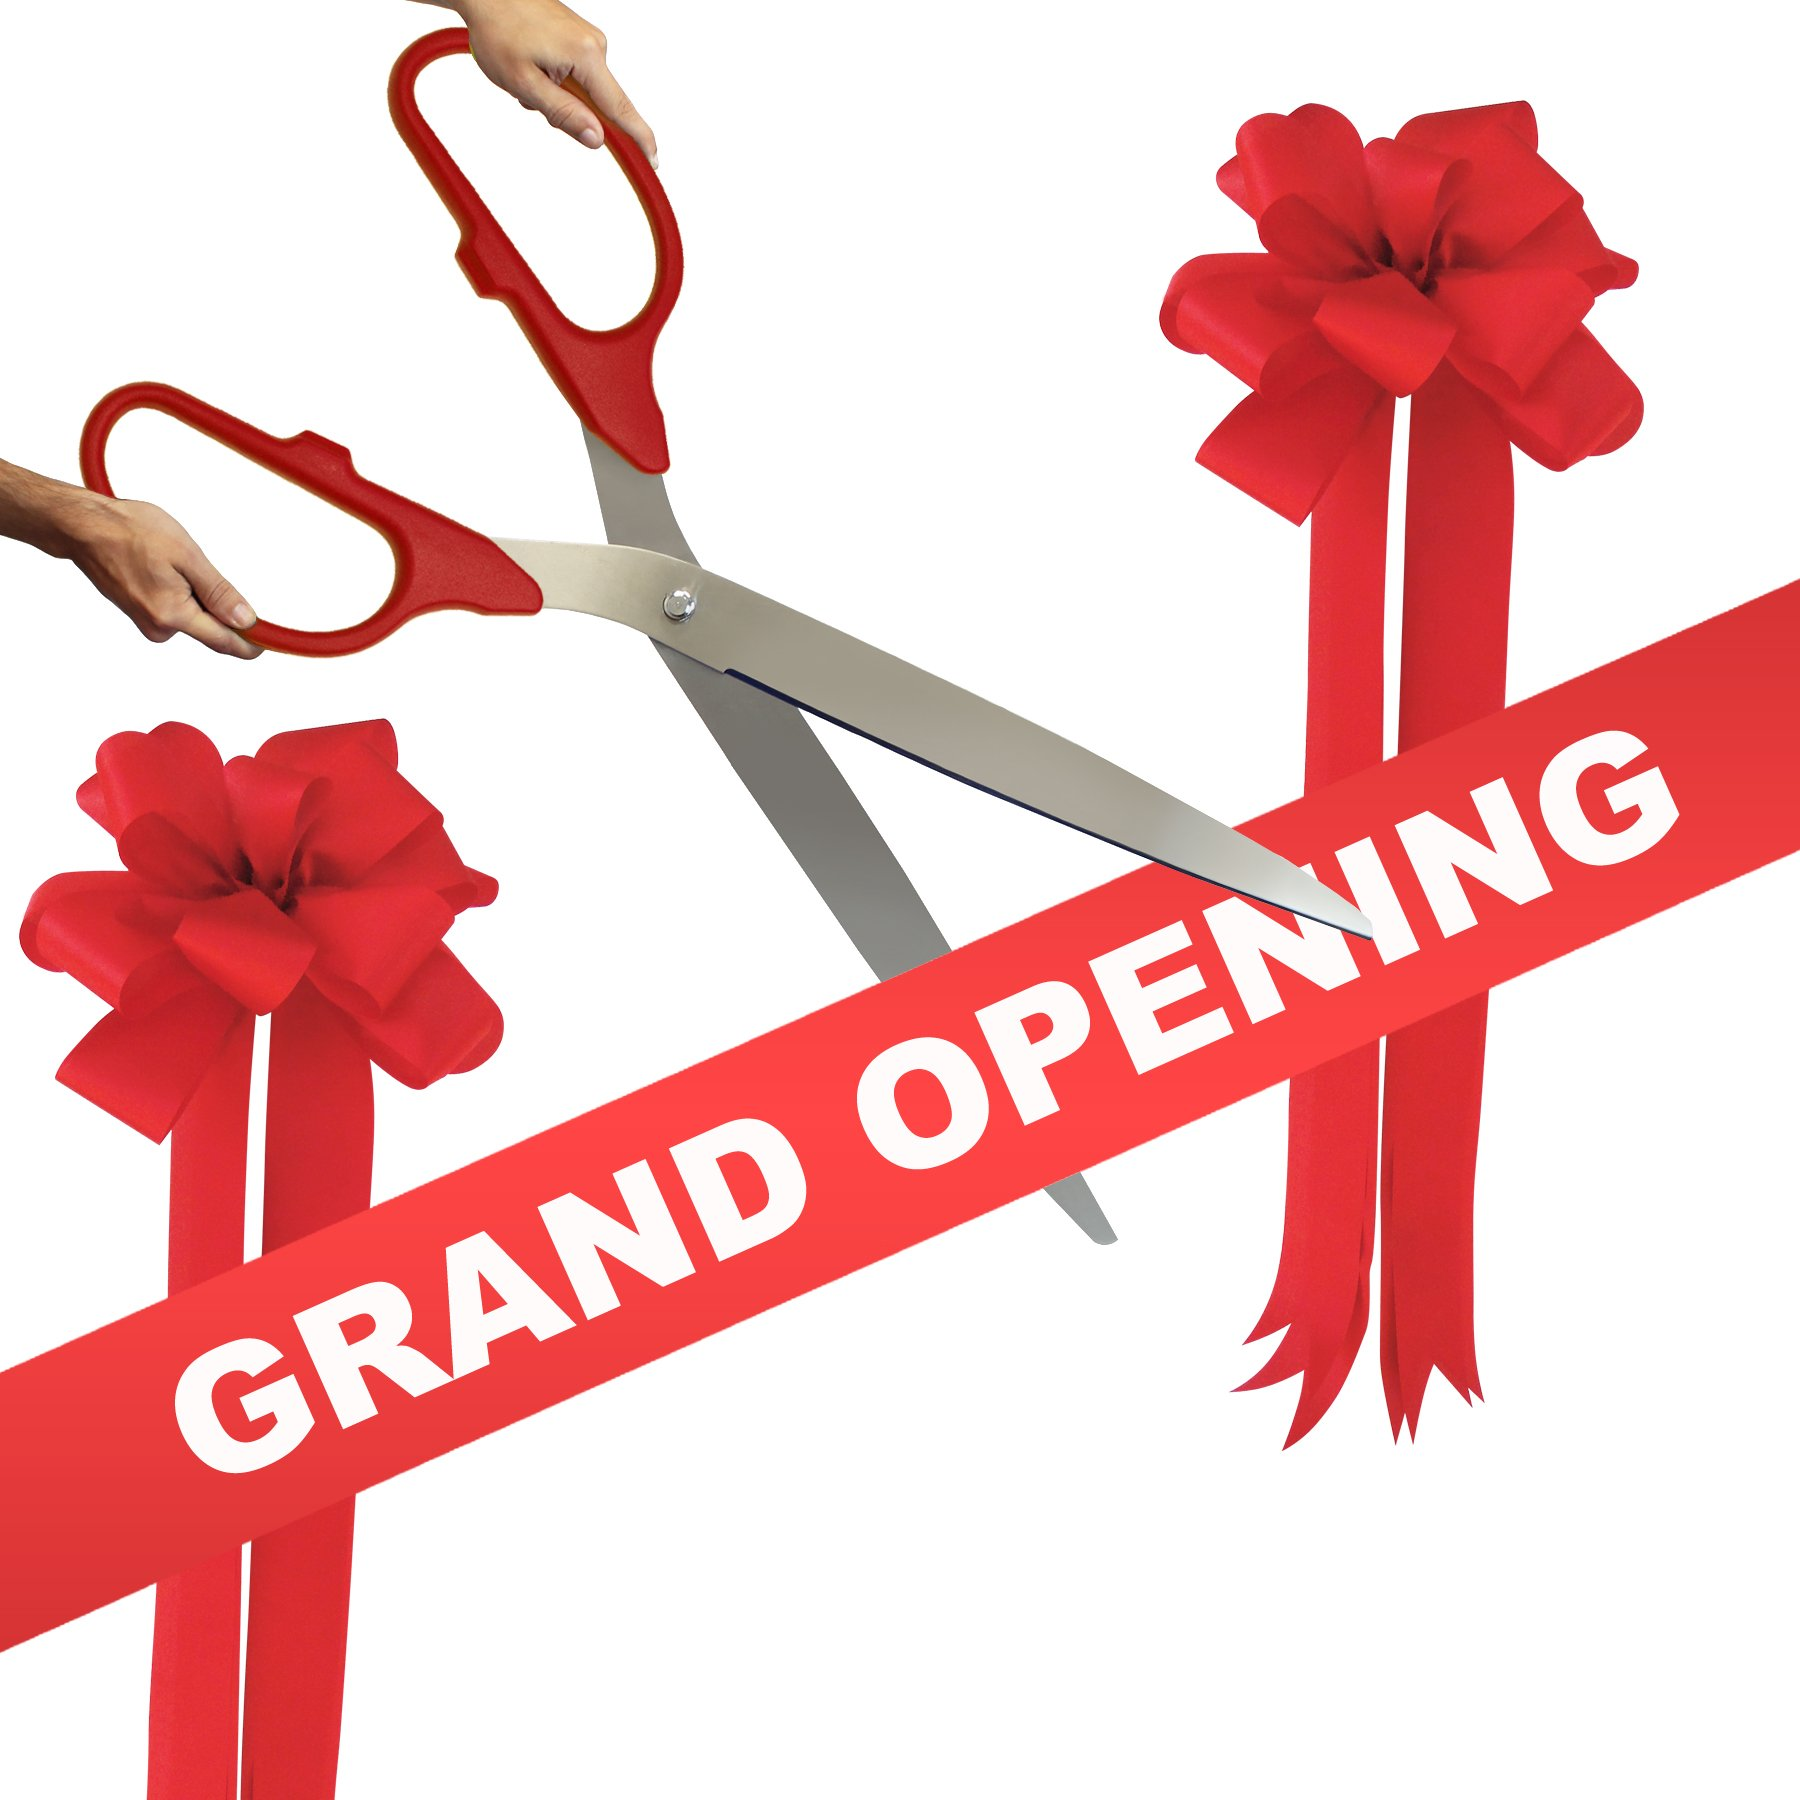 Grand Opening Kit - 36'' Red/Silver Ceremonial Ribbon Cutting Scissors with 5 Yards of 6'' Red Grand Opening Ribbon and 2 Red Bows